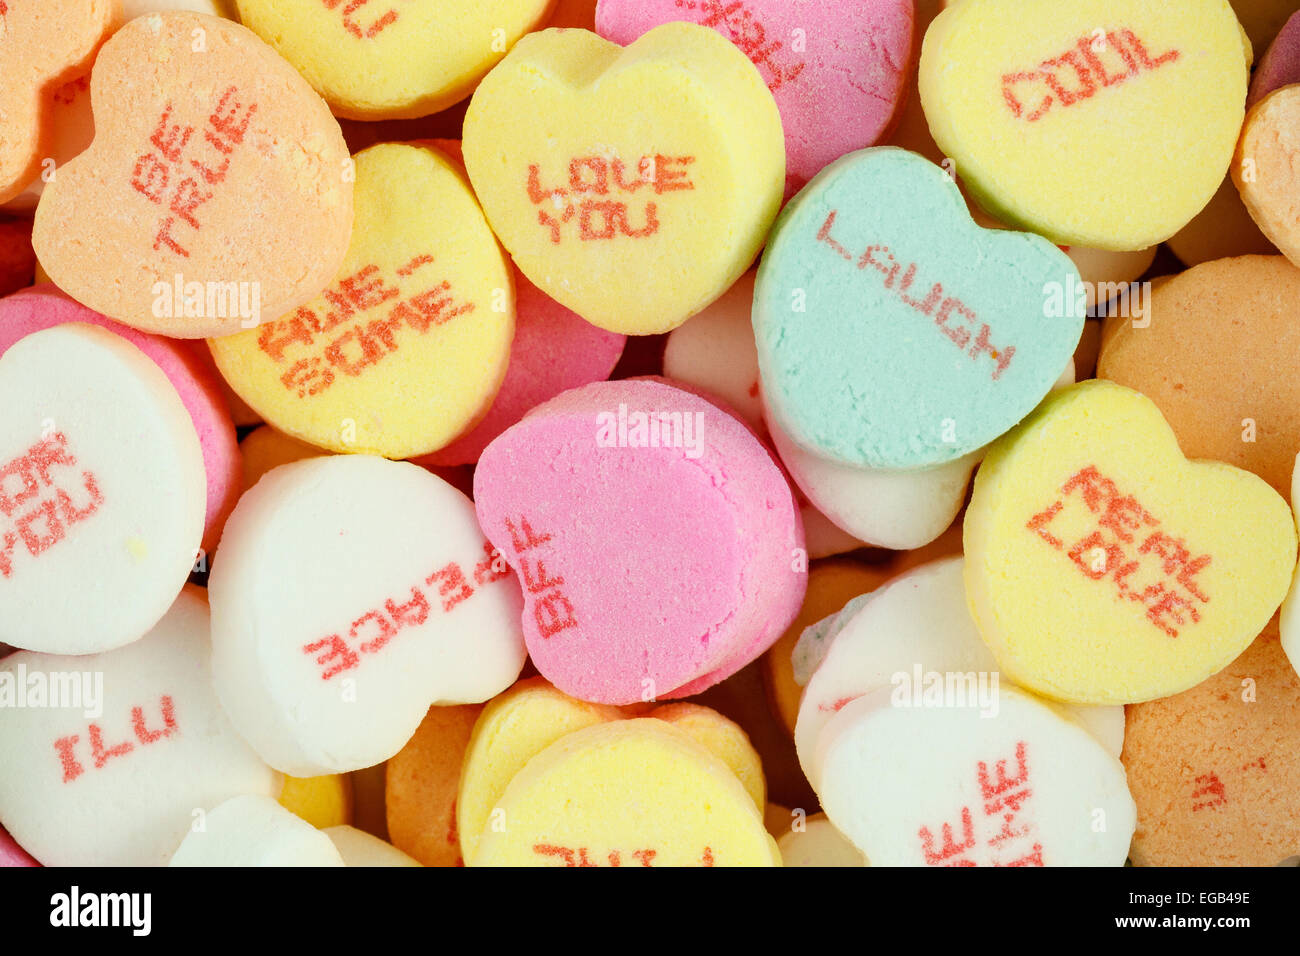 Colorful Conversation Hearts Candy For Valentines Day Stock Photo